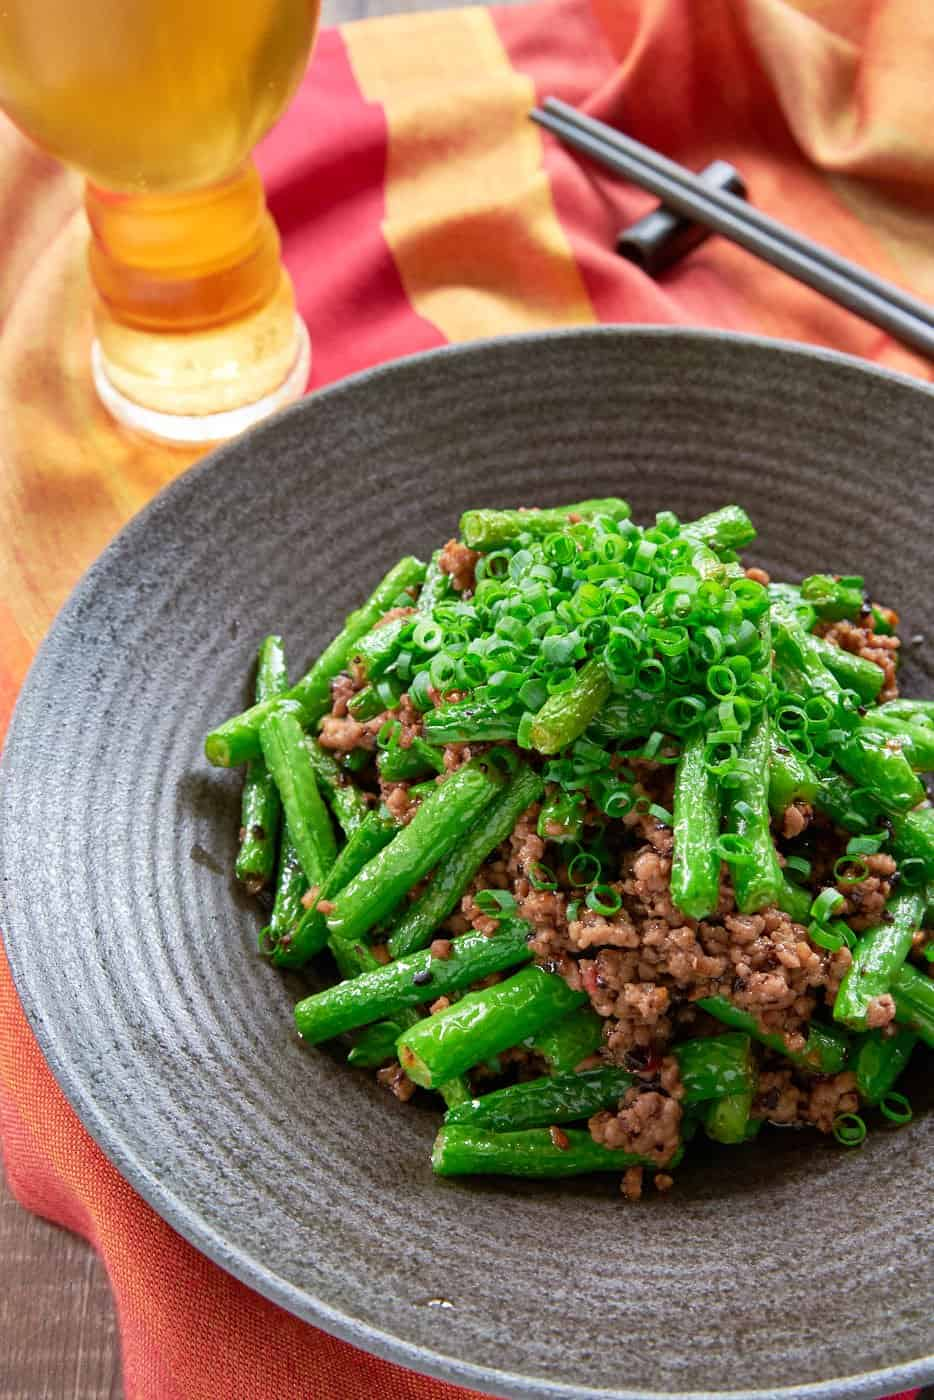 This easy Green Bean Stir Fry recipe is loaded with tender vibrant green beans and ground pork seasoned with a delicious chili garlic black bean sauce.